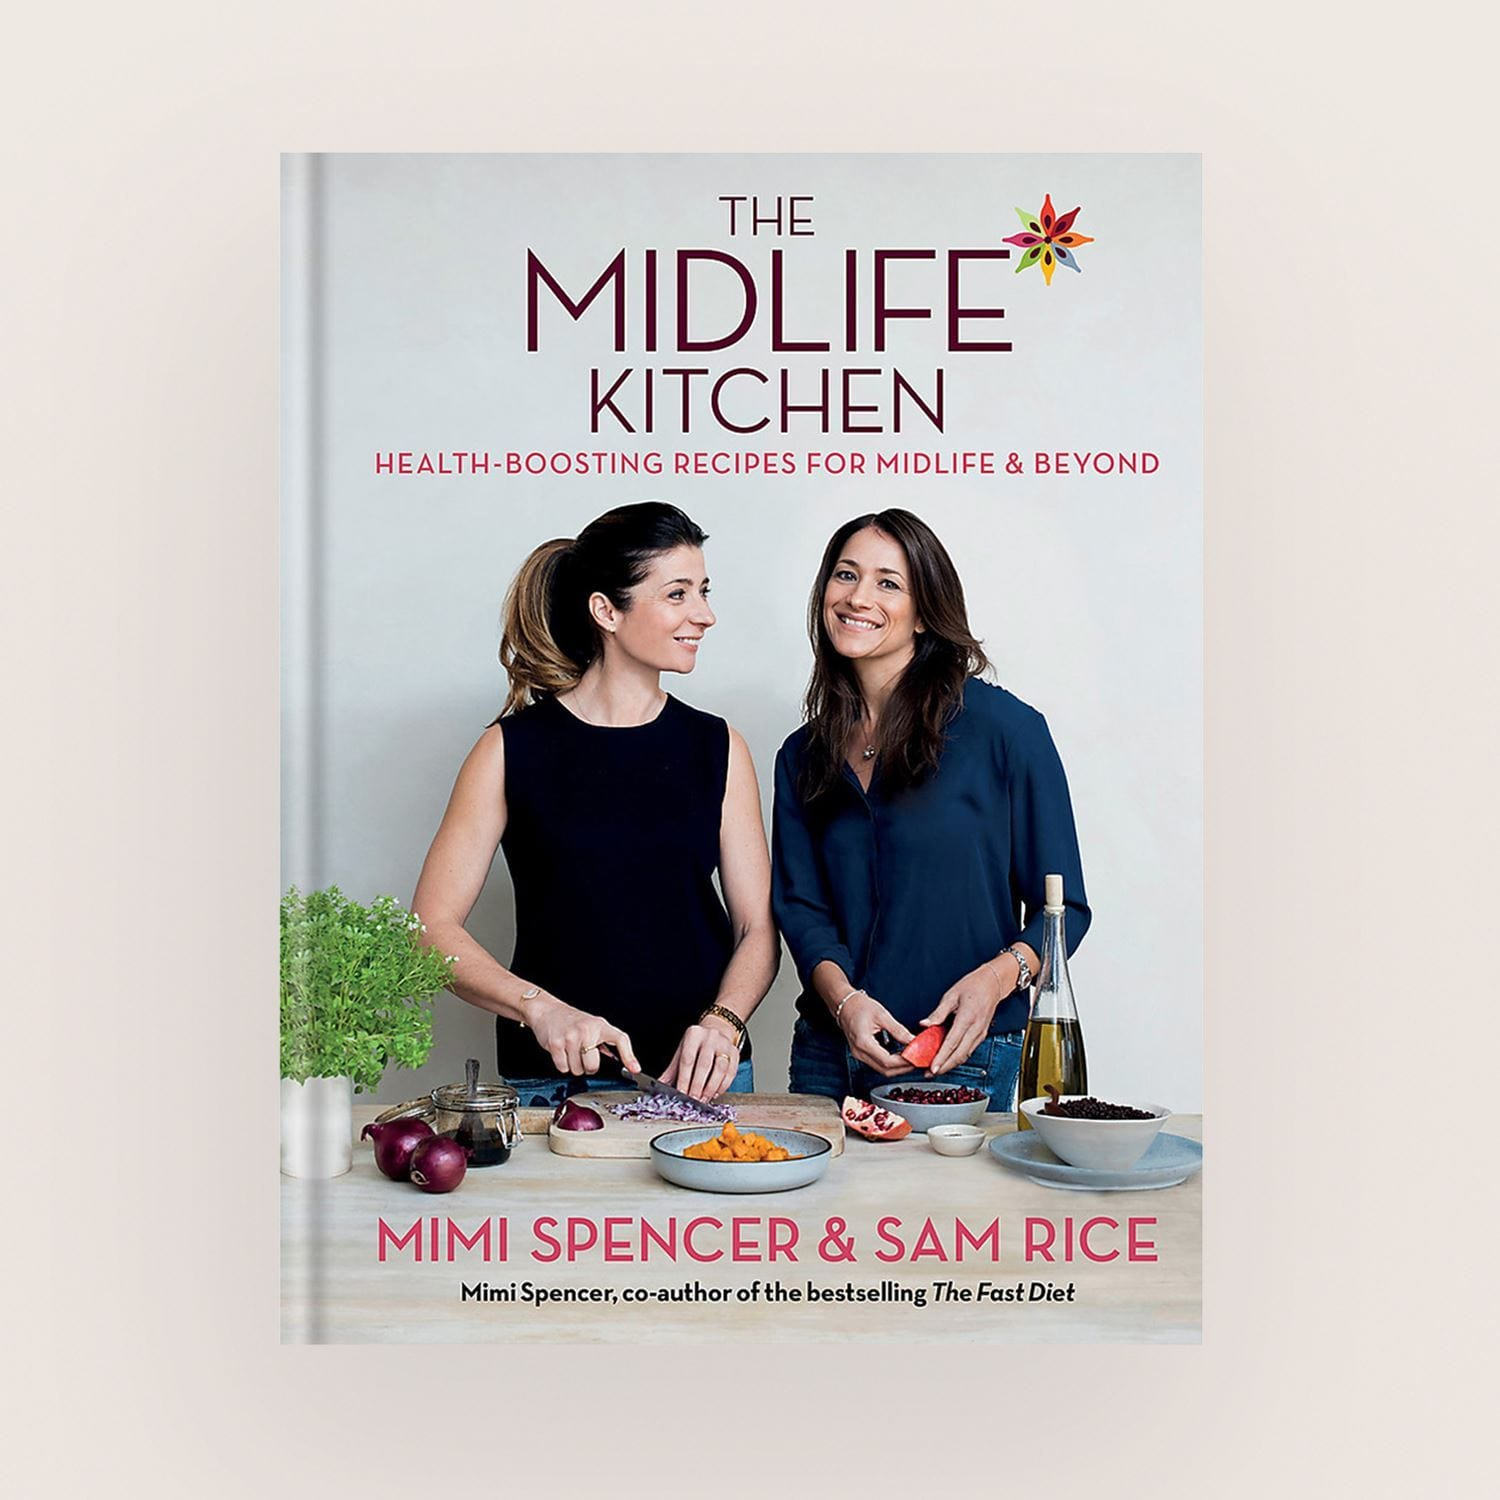 The Midlife Kitchen: Health-boosting recipes for midlife & beyond by Mimi Spencer and Sam Rice